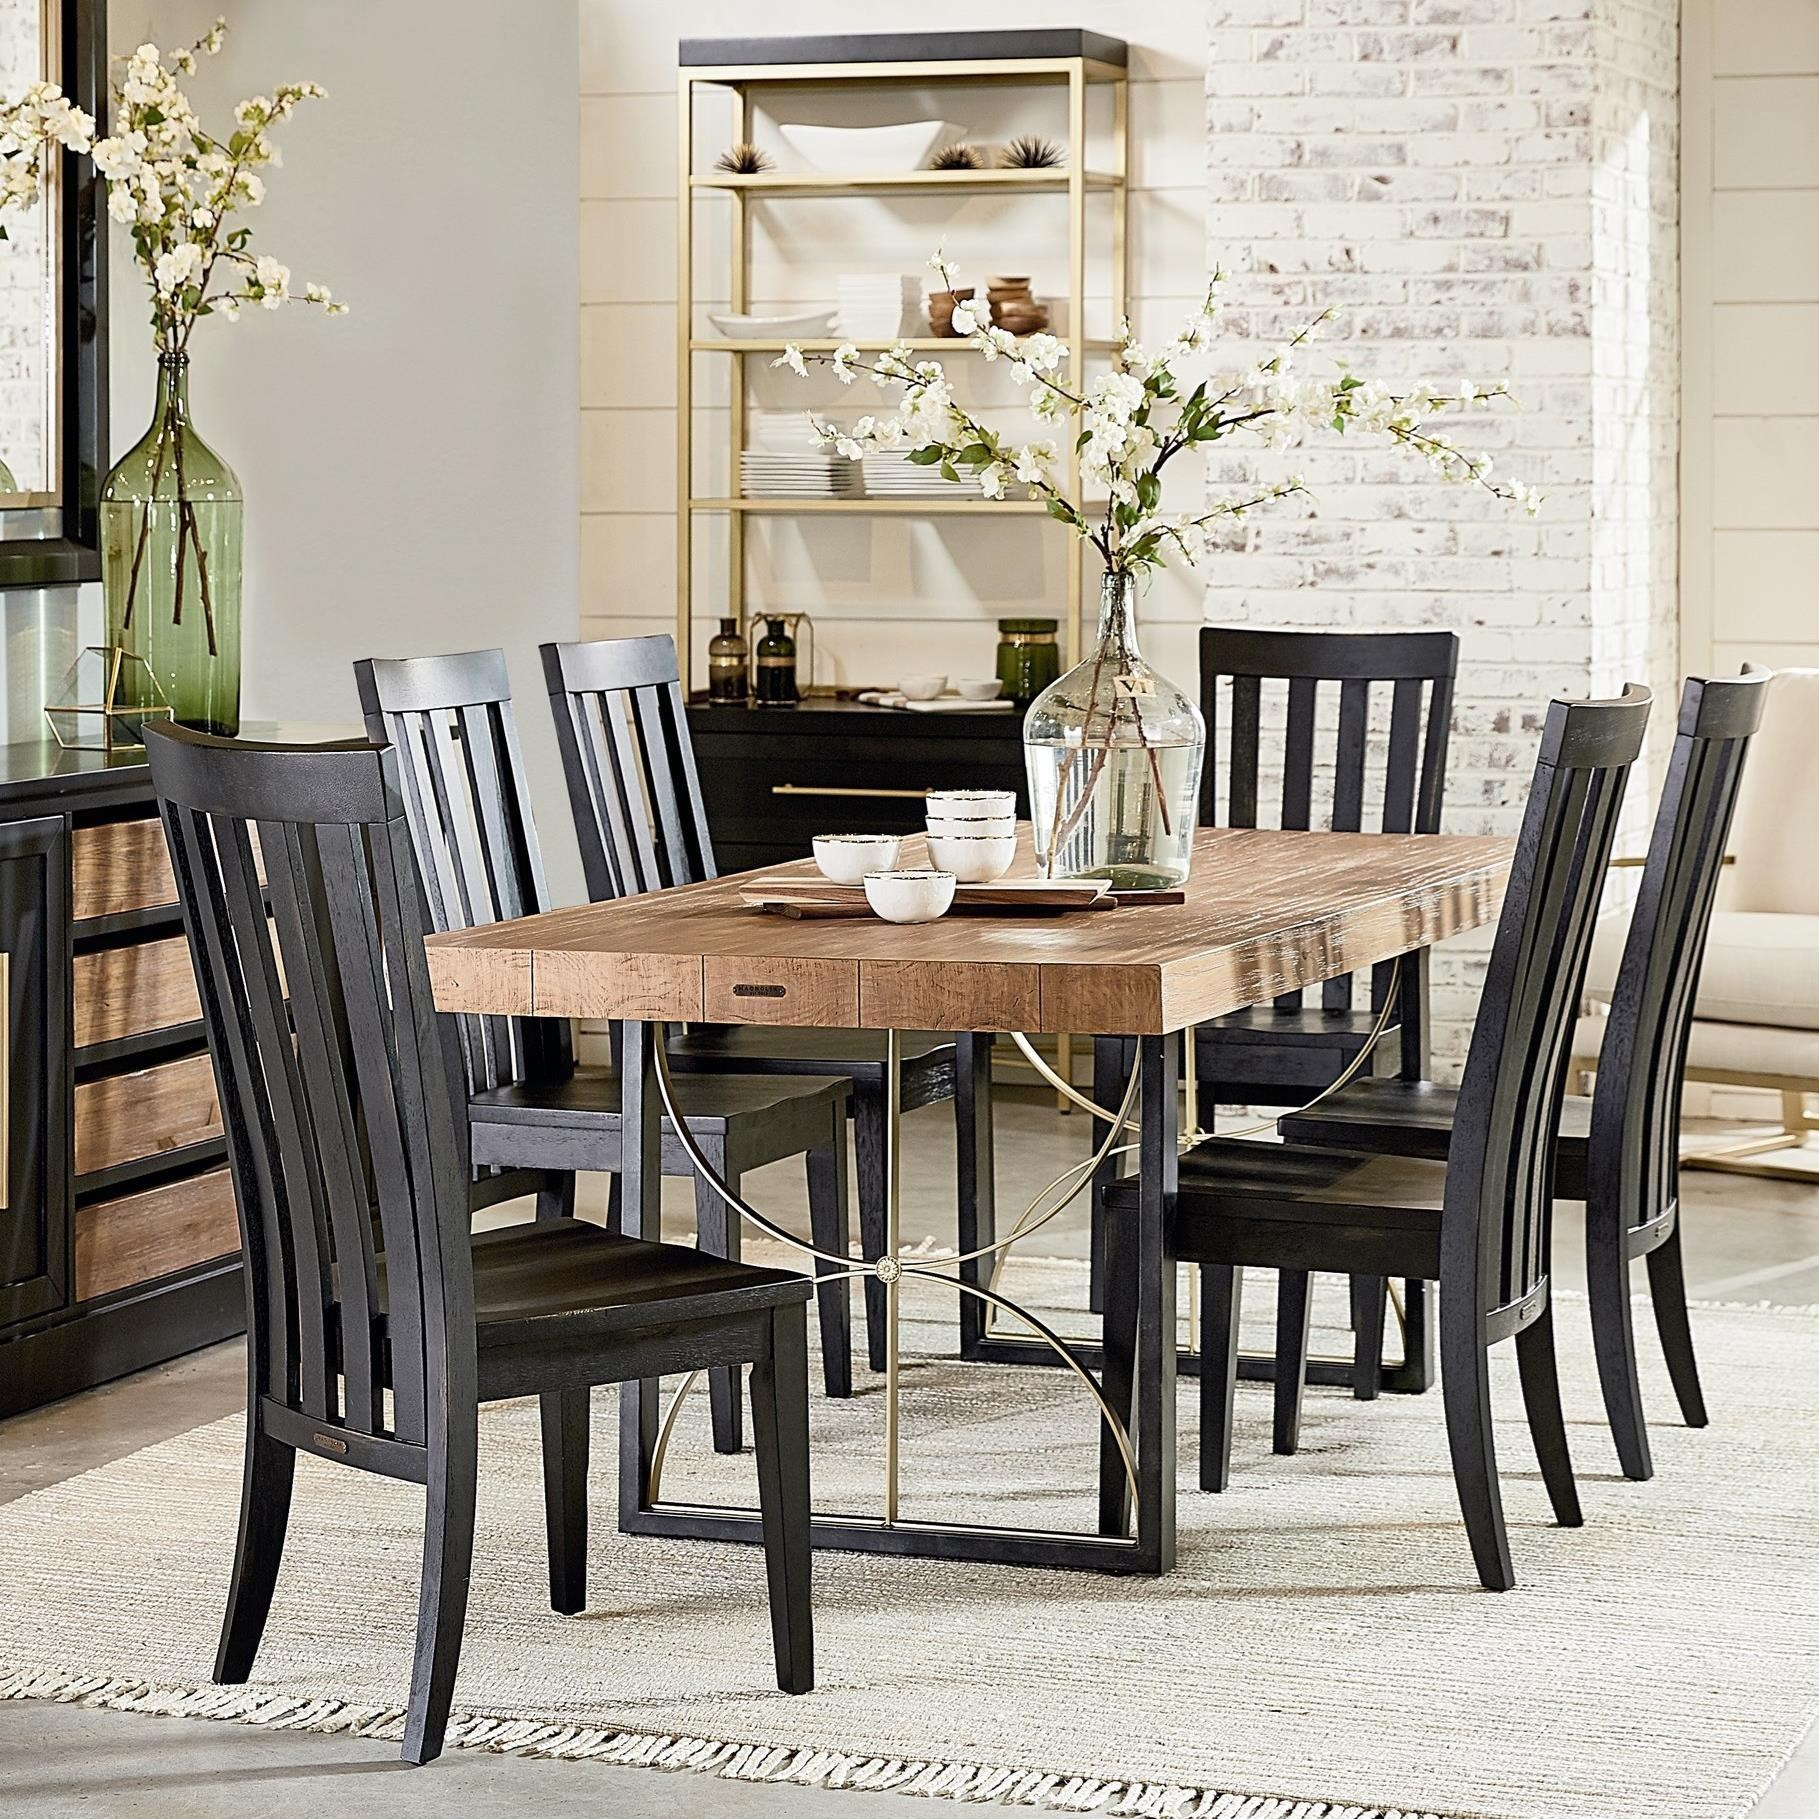 Modern Dining Room Furniture Modern 6 Contemporary Table Chair Set By Magnolia Home By Joanna Gaines At Olinde S Furniture